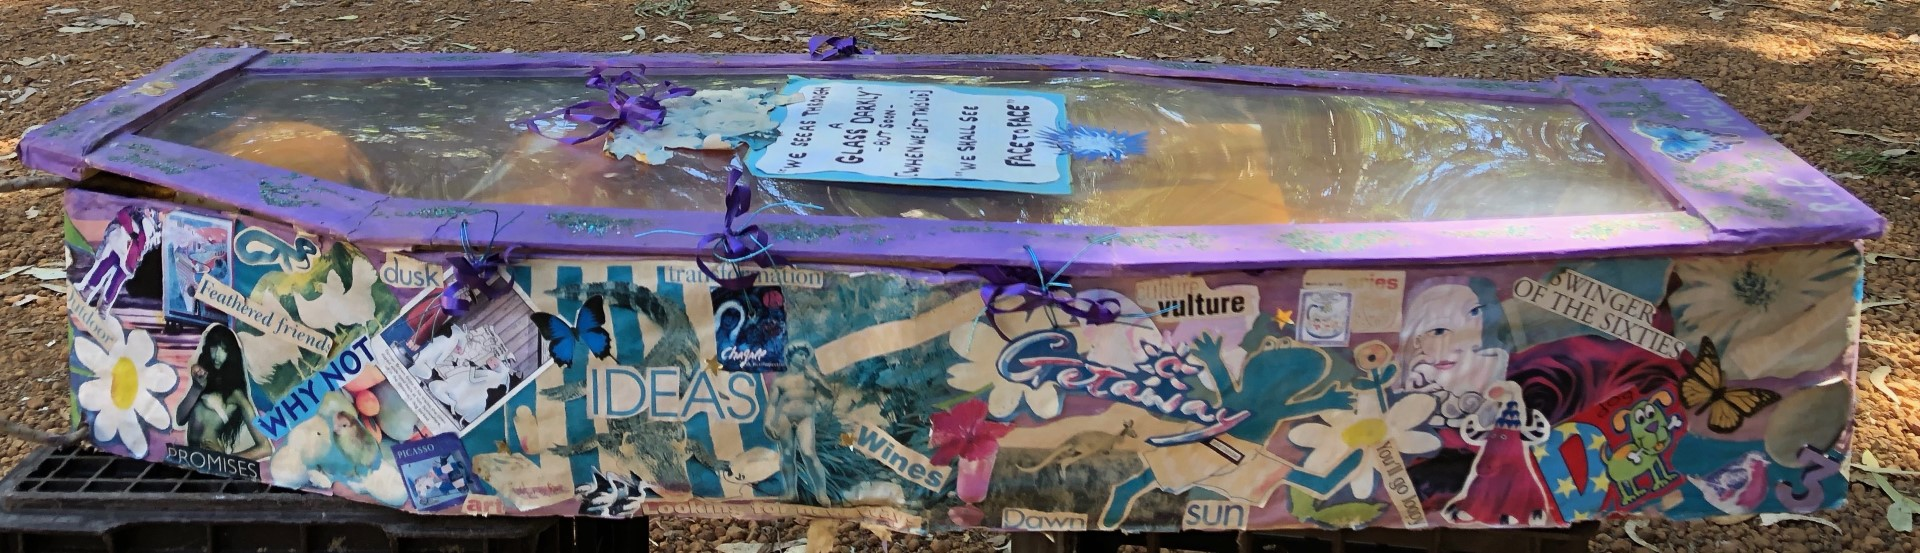 Colorful coffin with collage and a glass lid.